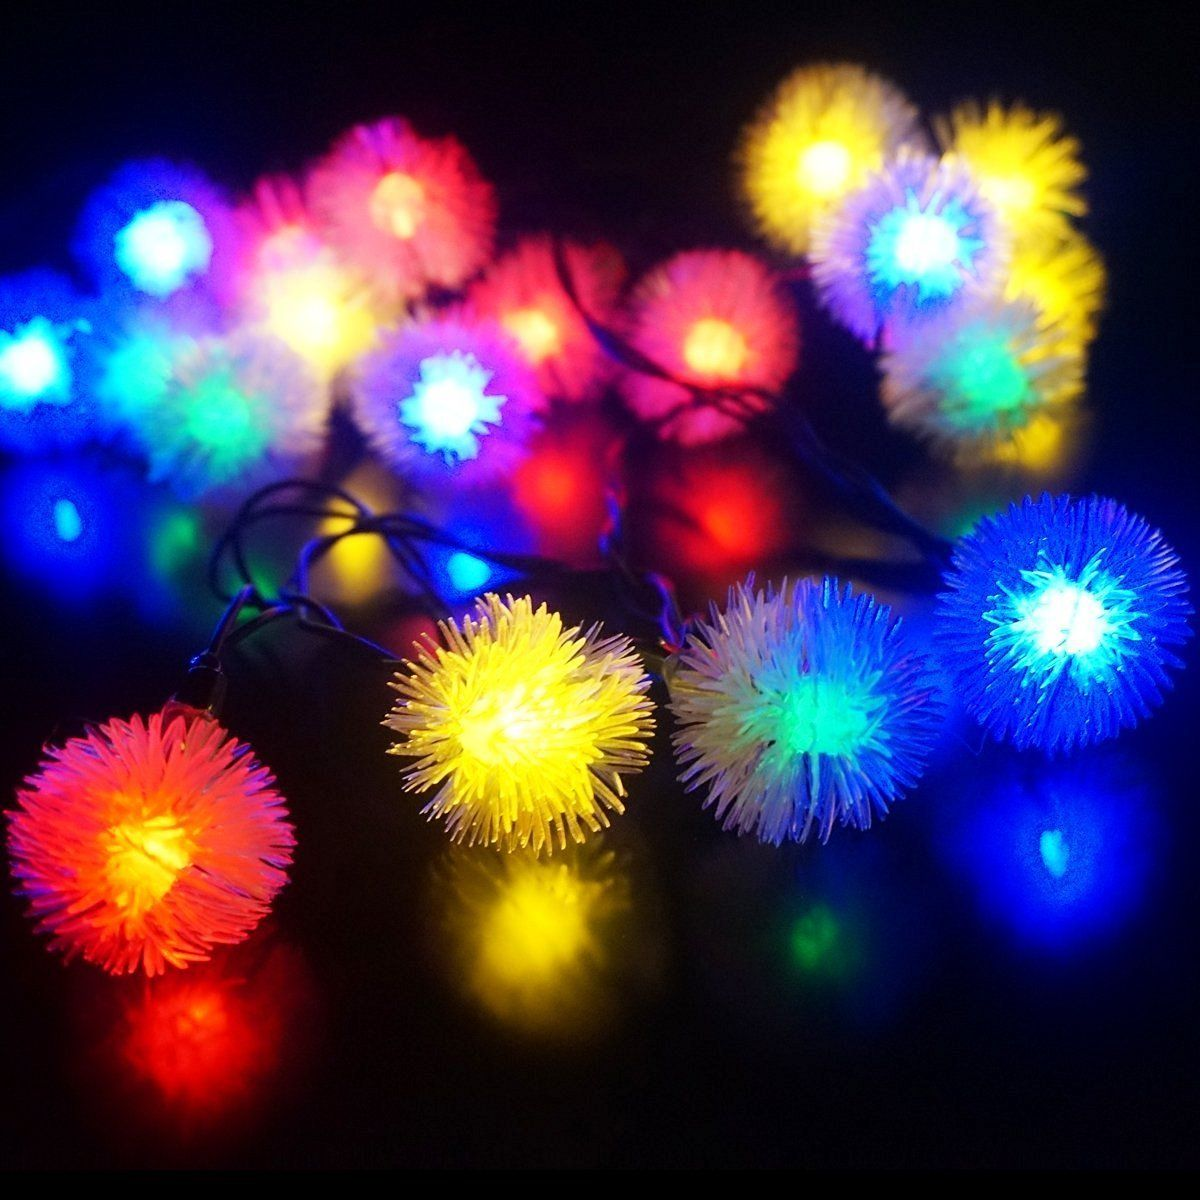 Fashionlite solar lights 50 leds chuzzle ball solar powered string fashionlite solar lights 50 leds chuzzle ball solar powered string lights outdoor christmas lights garden yard mozeypictures Images